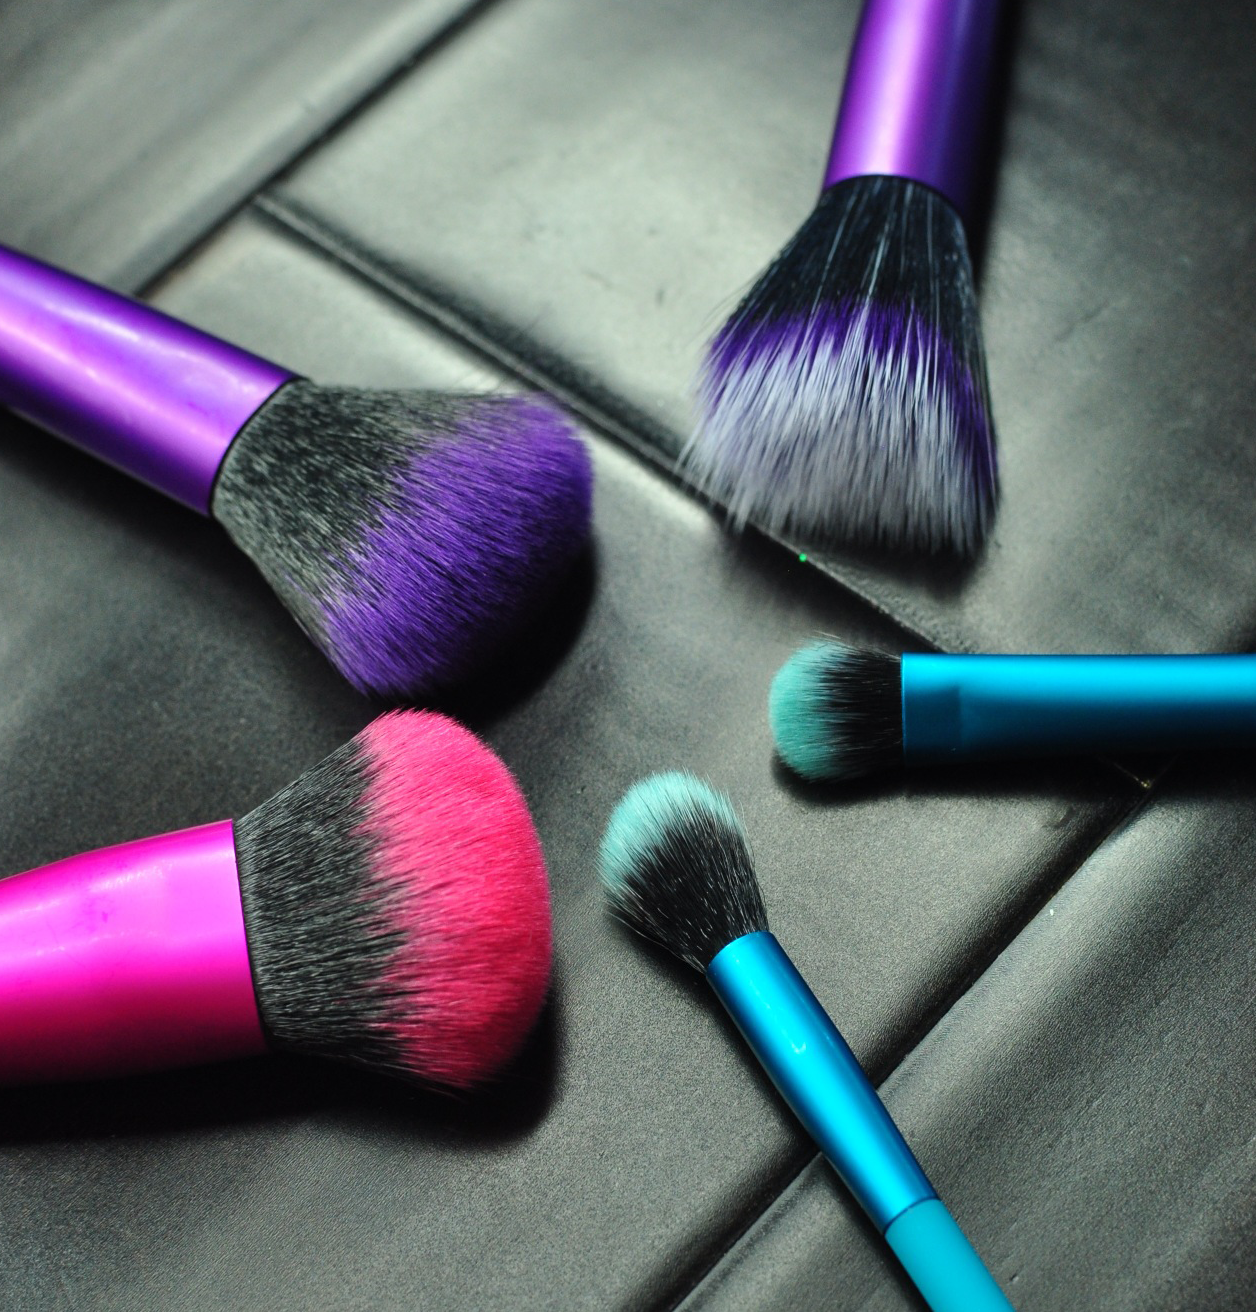 royal and langnickel makeup brushes review